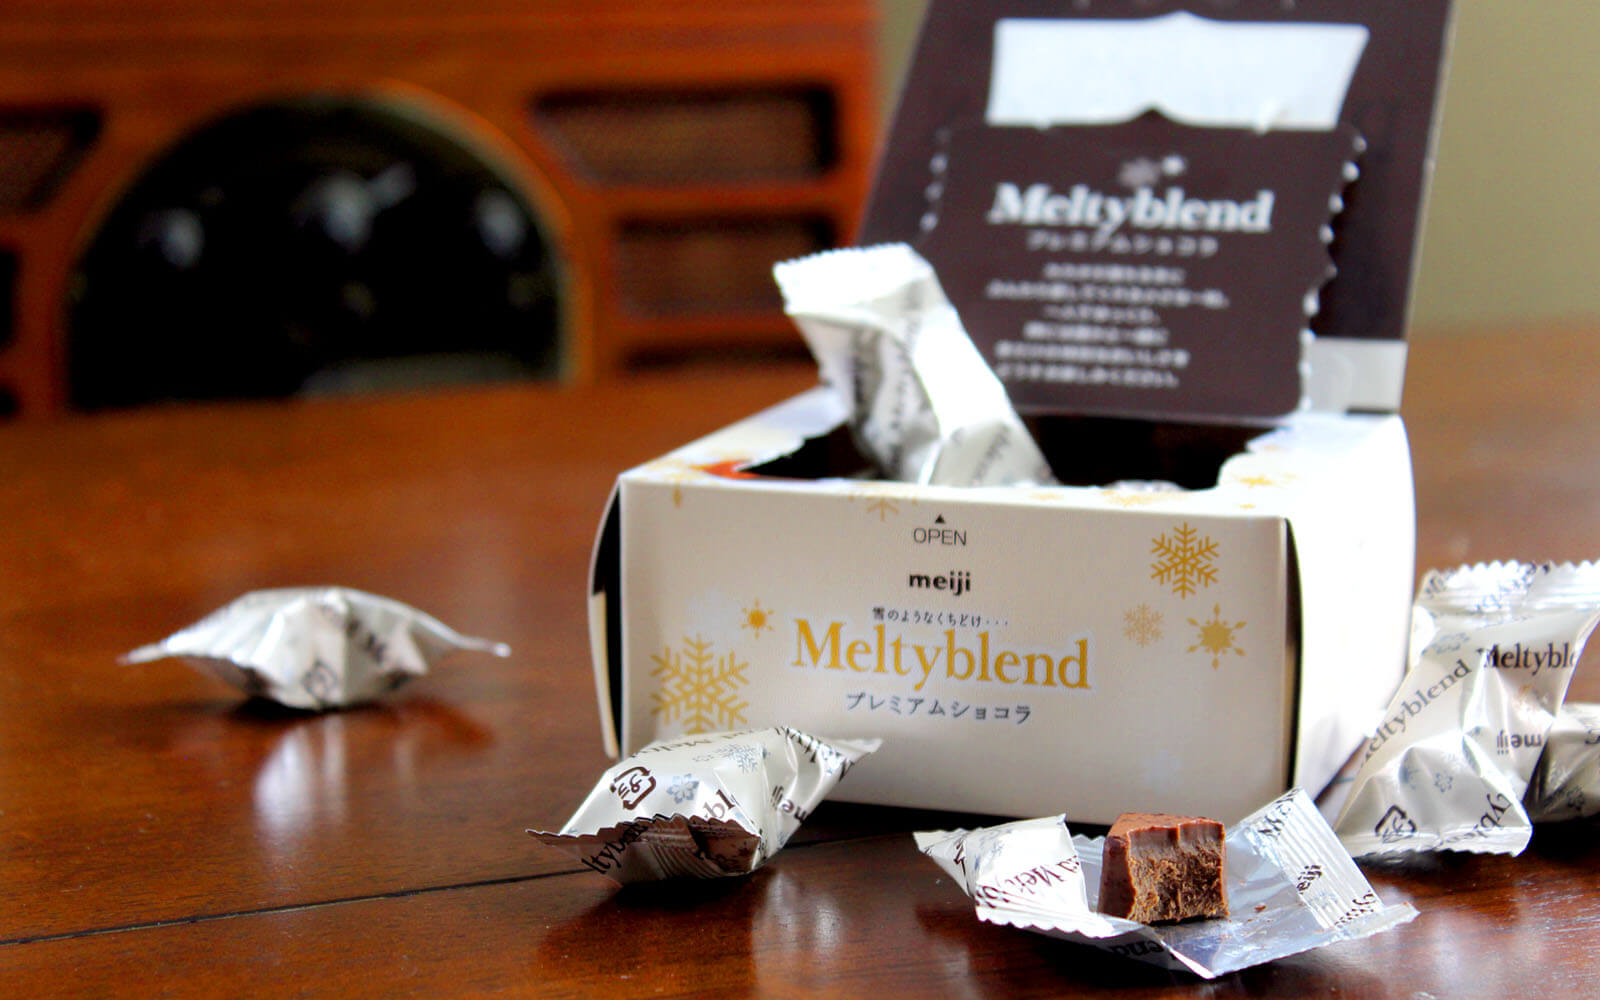 Yatta-Tachi Unboxes: Anime Bento Meiji Meltyblend Chocolate Premium Chocolate - 2016 Winter Limited Edition